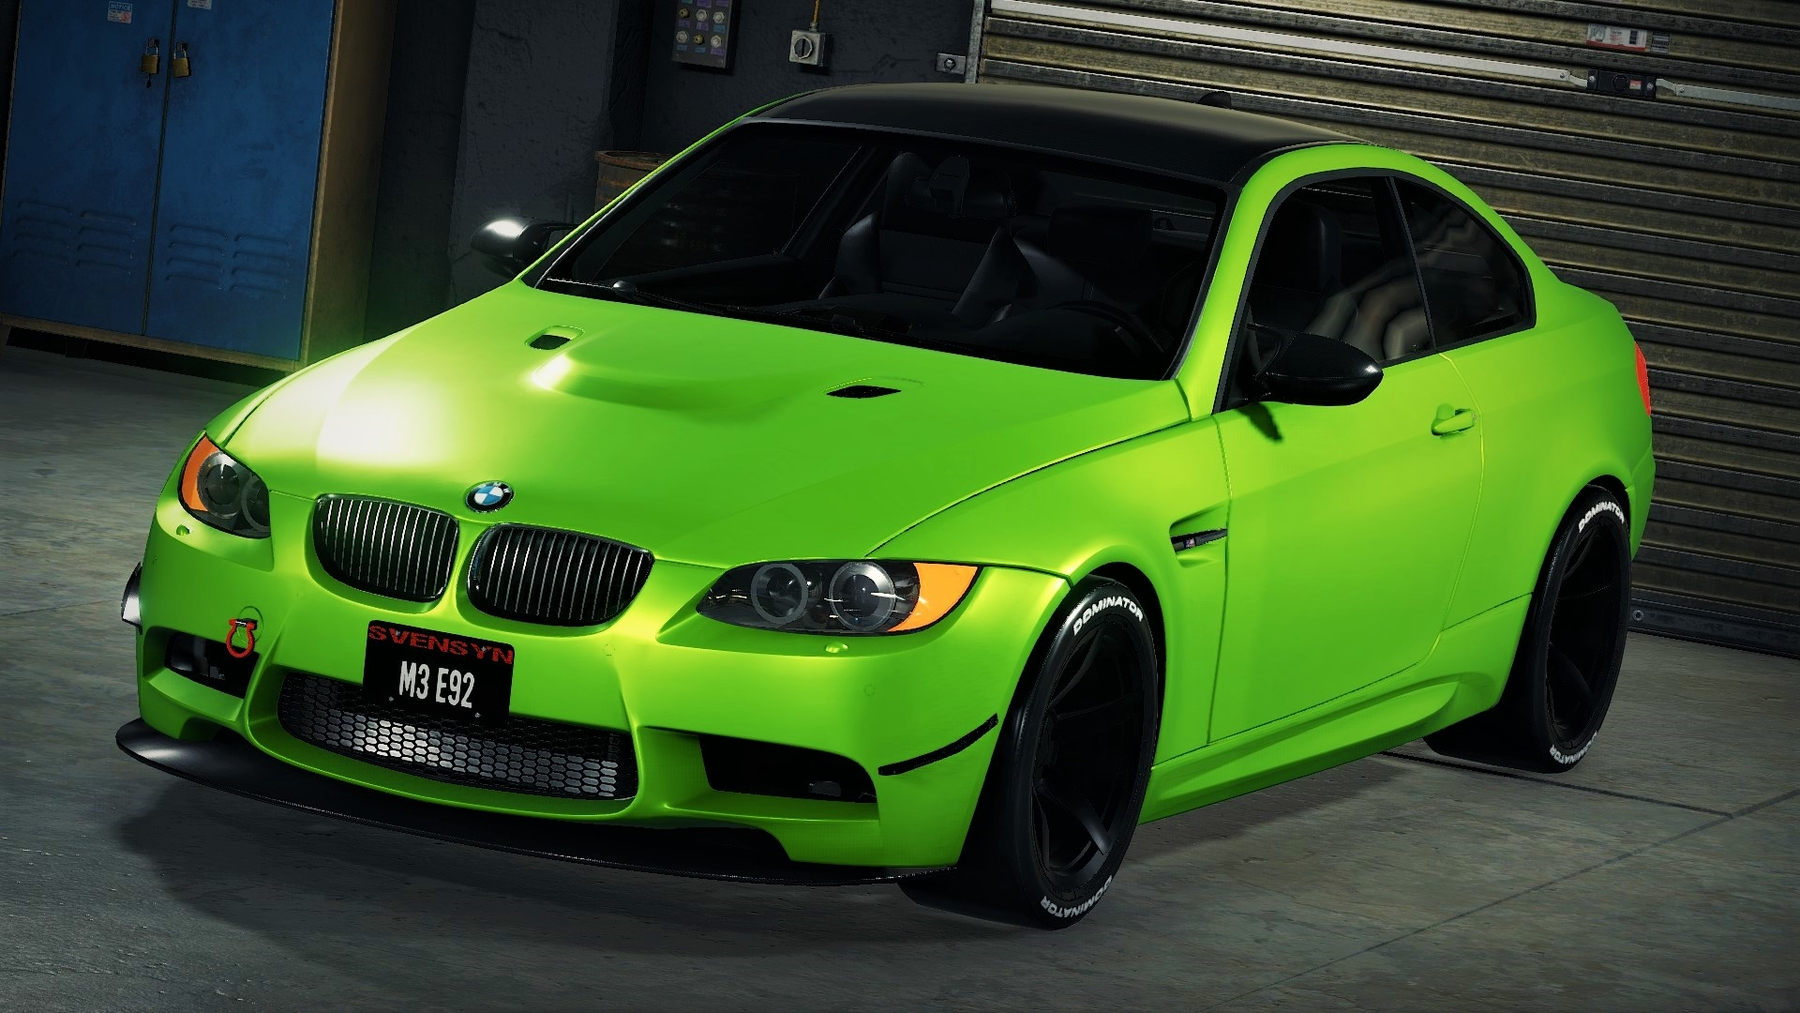 BMW M3 E92 2008 - CMS 2018 Cars - Car Mechanic Simulator 2018 - Mods